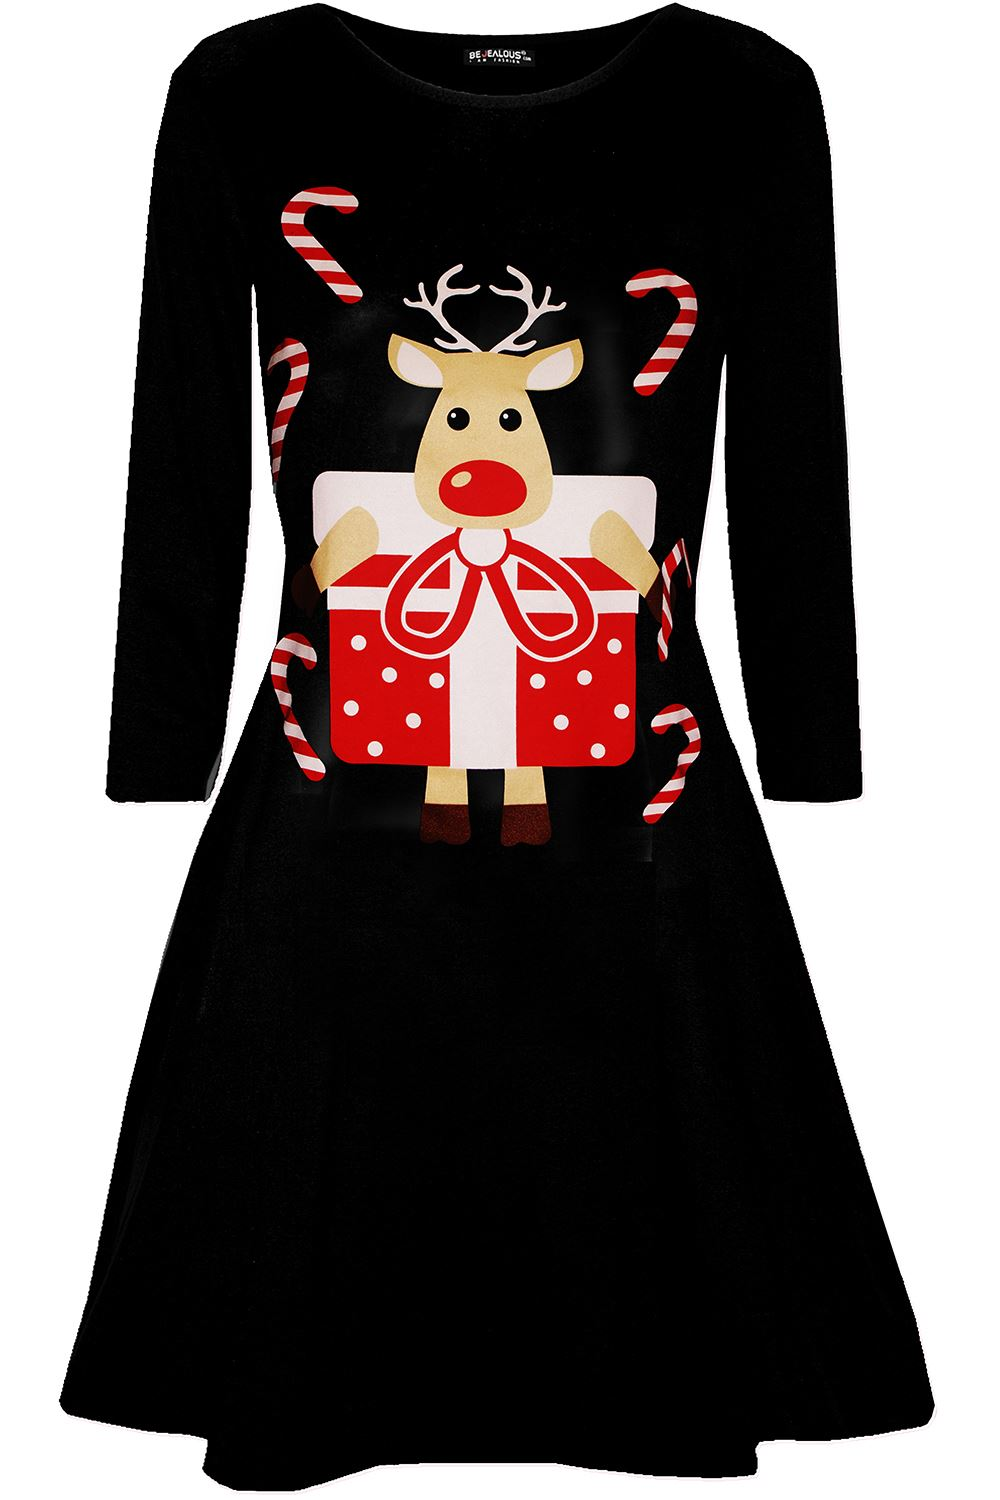 Womens-Ladies-Kids-Girls-Christmas-Xmas-Santa-Reindeer-Flared-Swing-Mini-Dress thumbnail 43